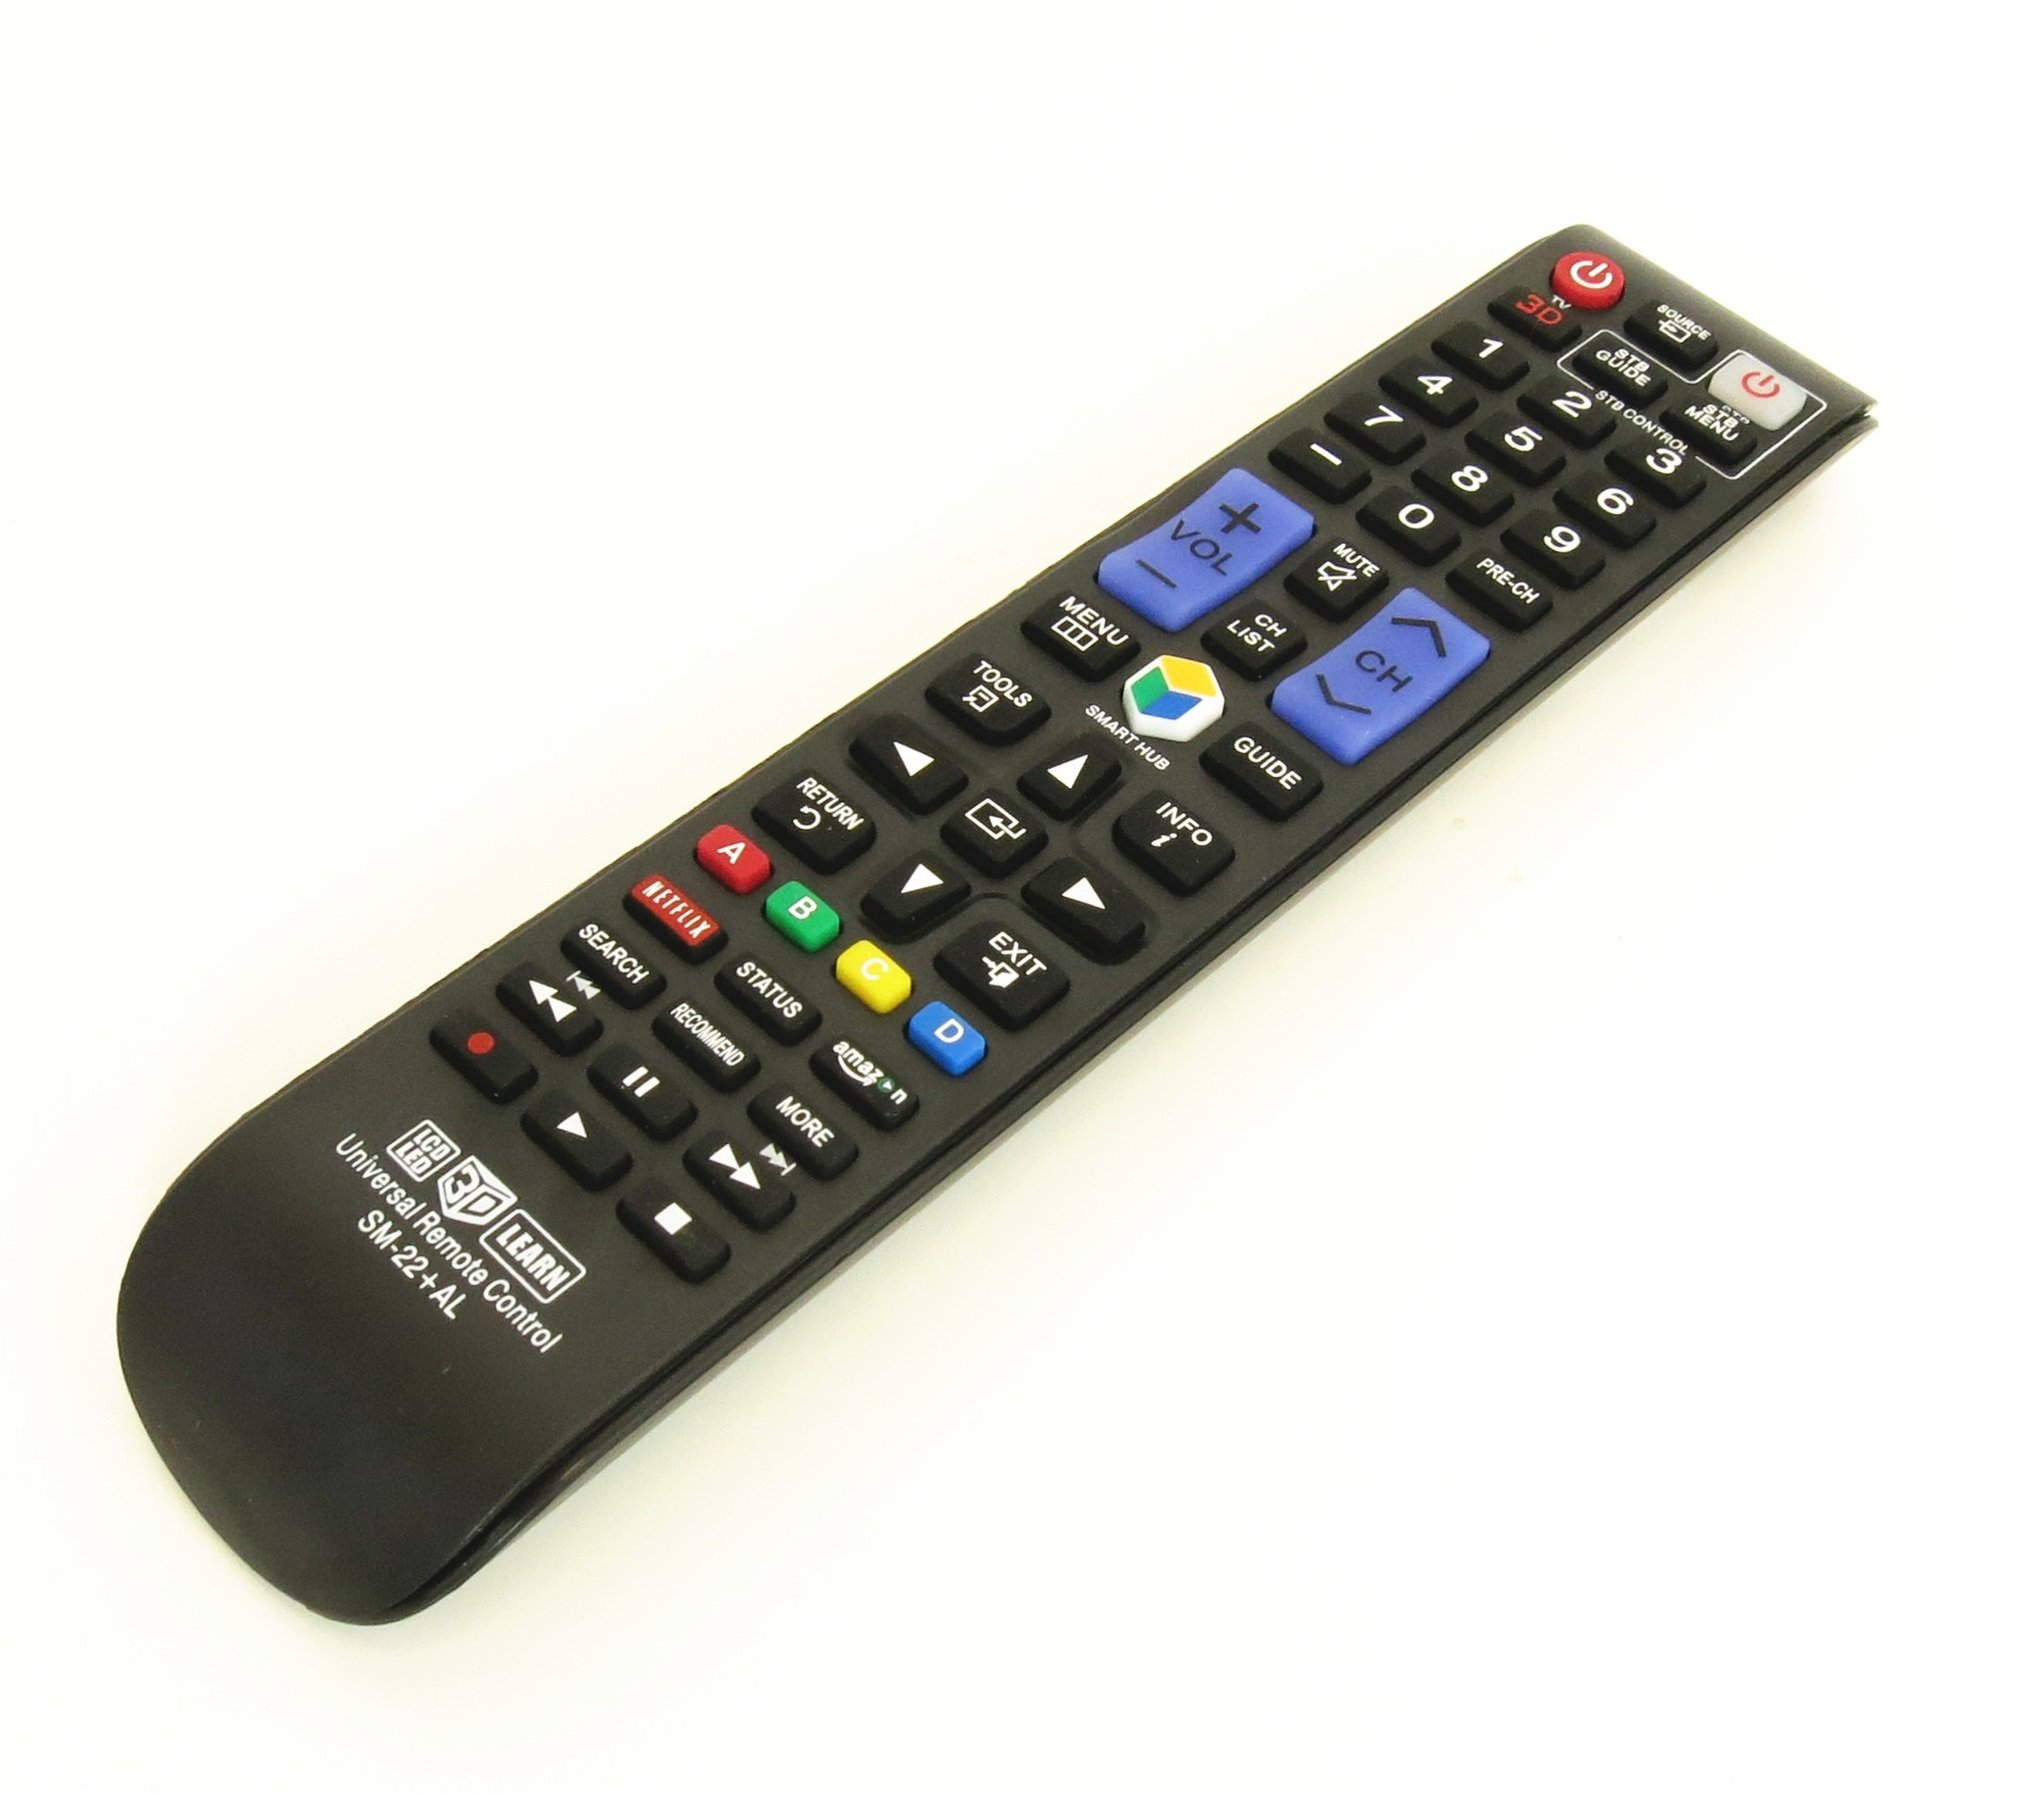 New Nettech BN59-01178W Universal Remote Control for All Samsung BRAND TV, Smart TV - 1 Year Warranty(SM-22+AL) by Nettech